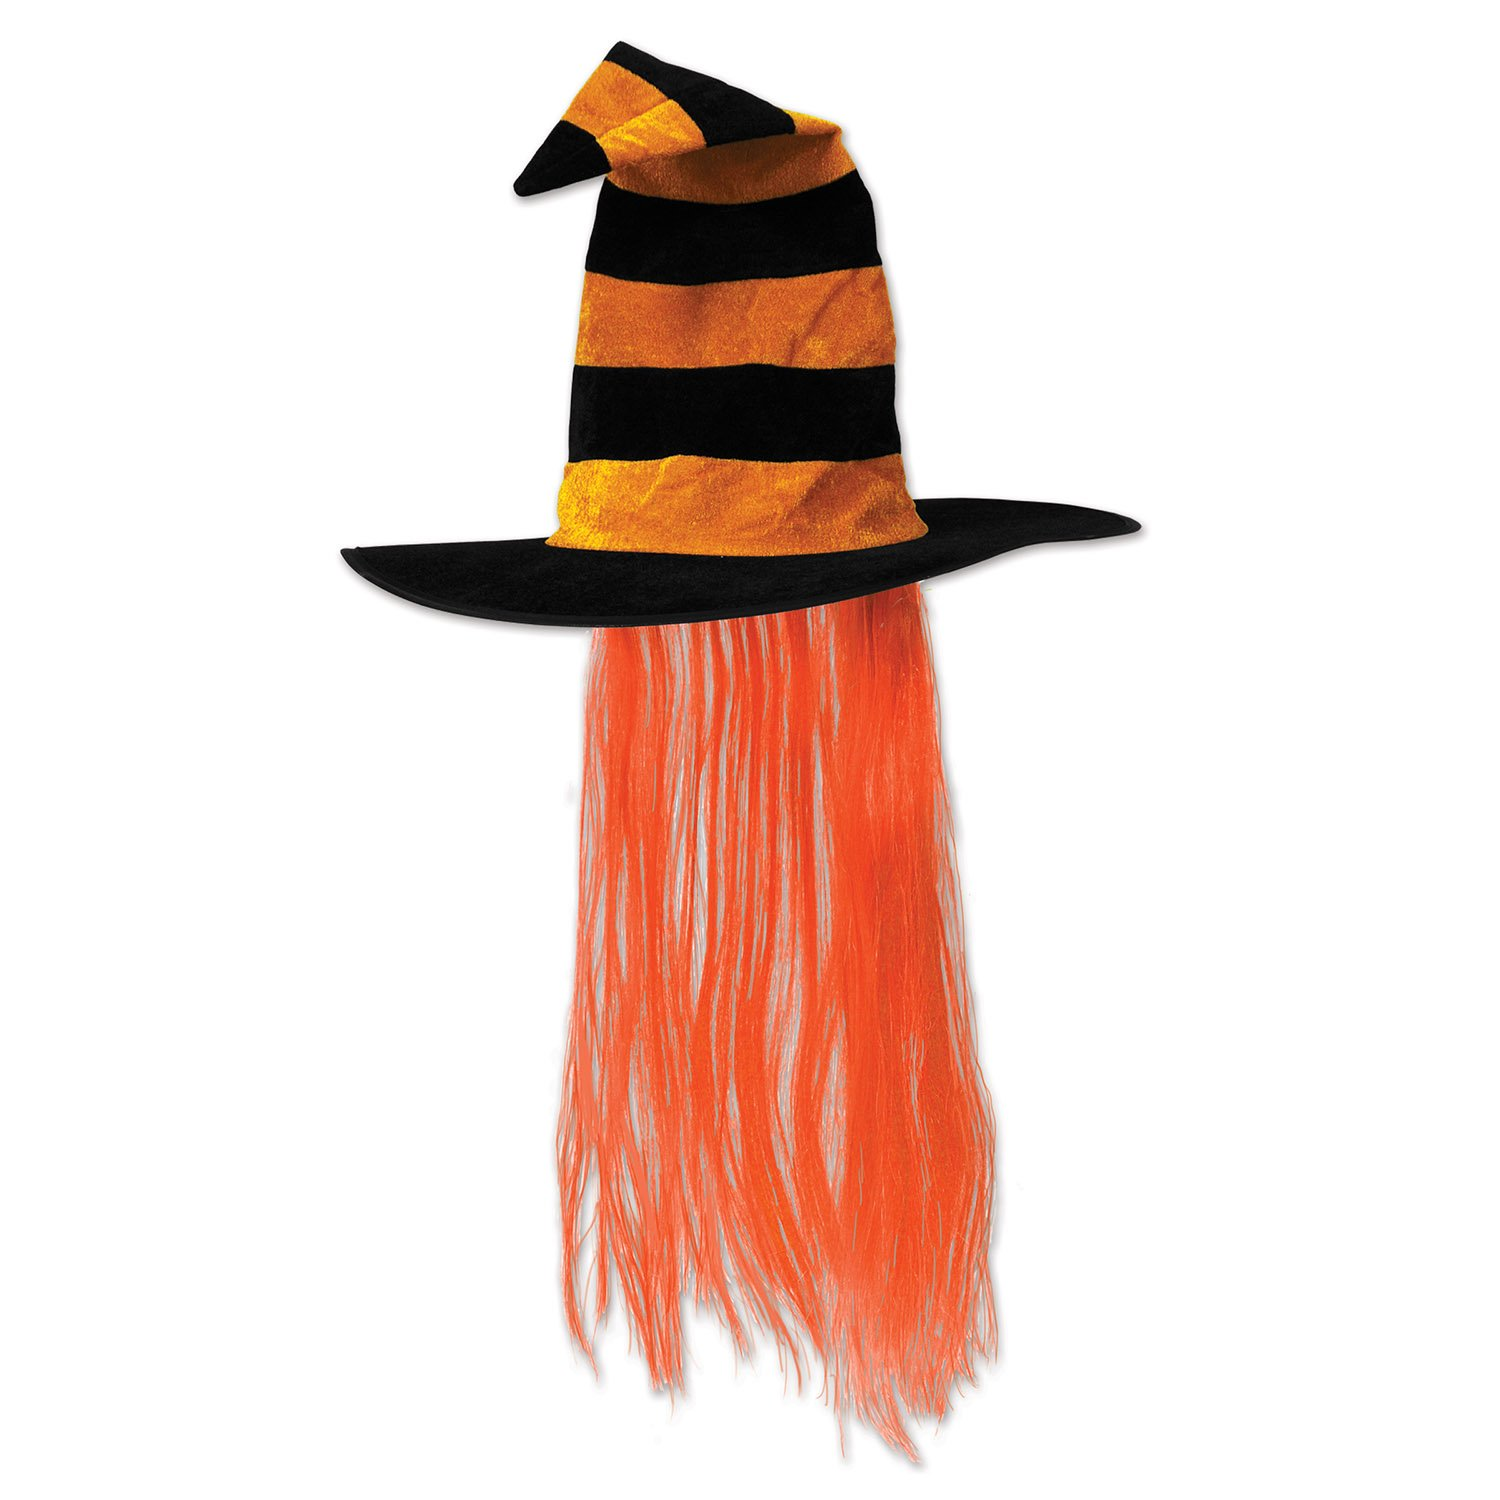 Beistle 00713-HP Witch Hat with Hair The Beistle Company